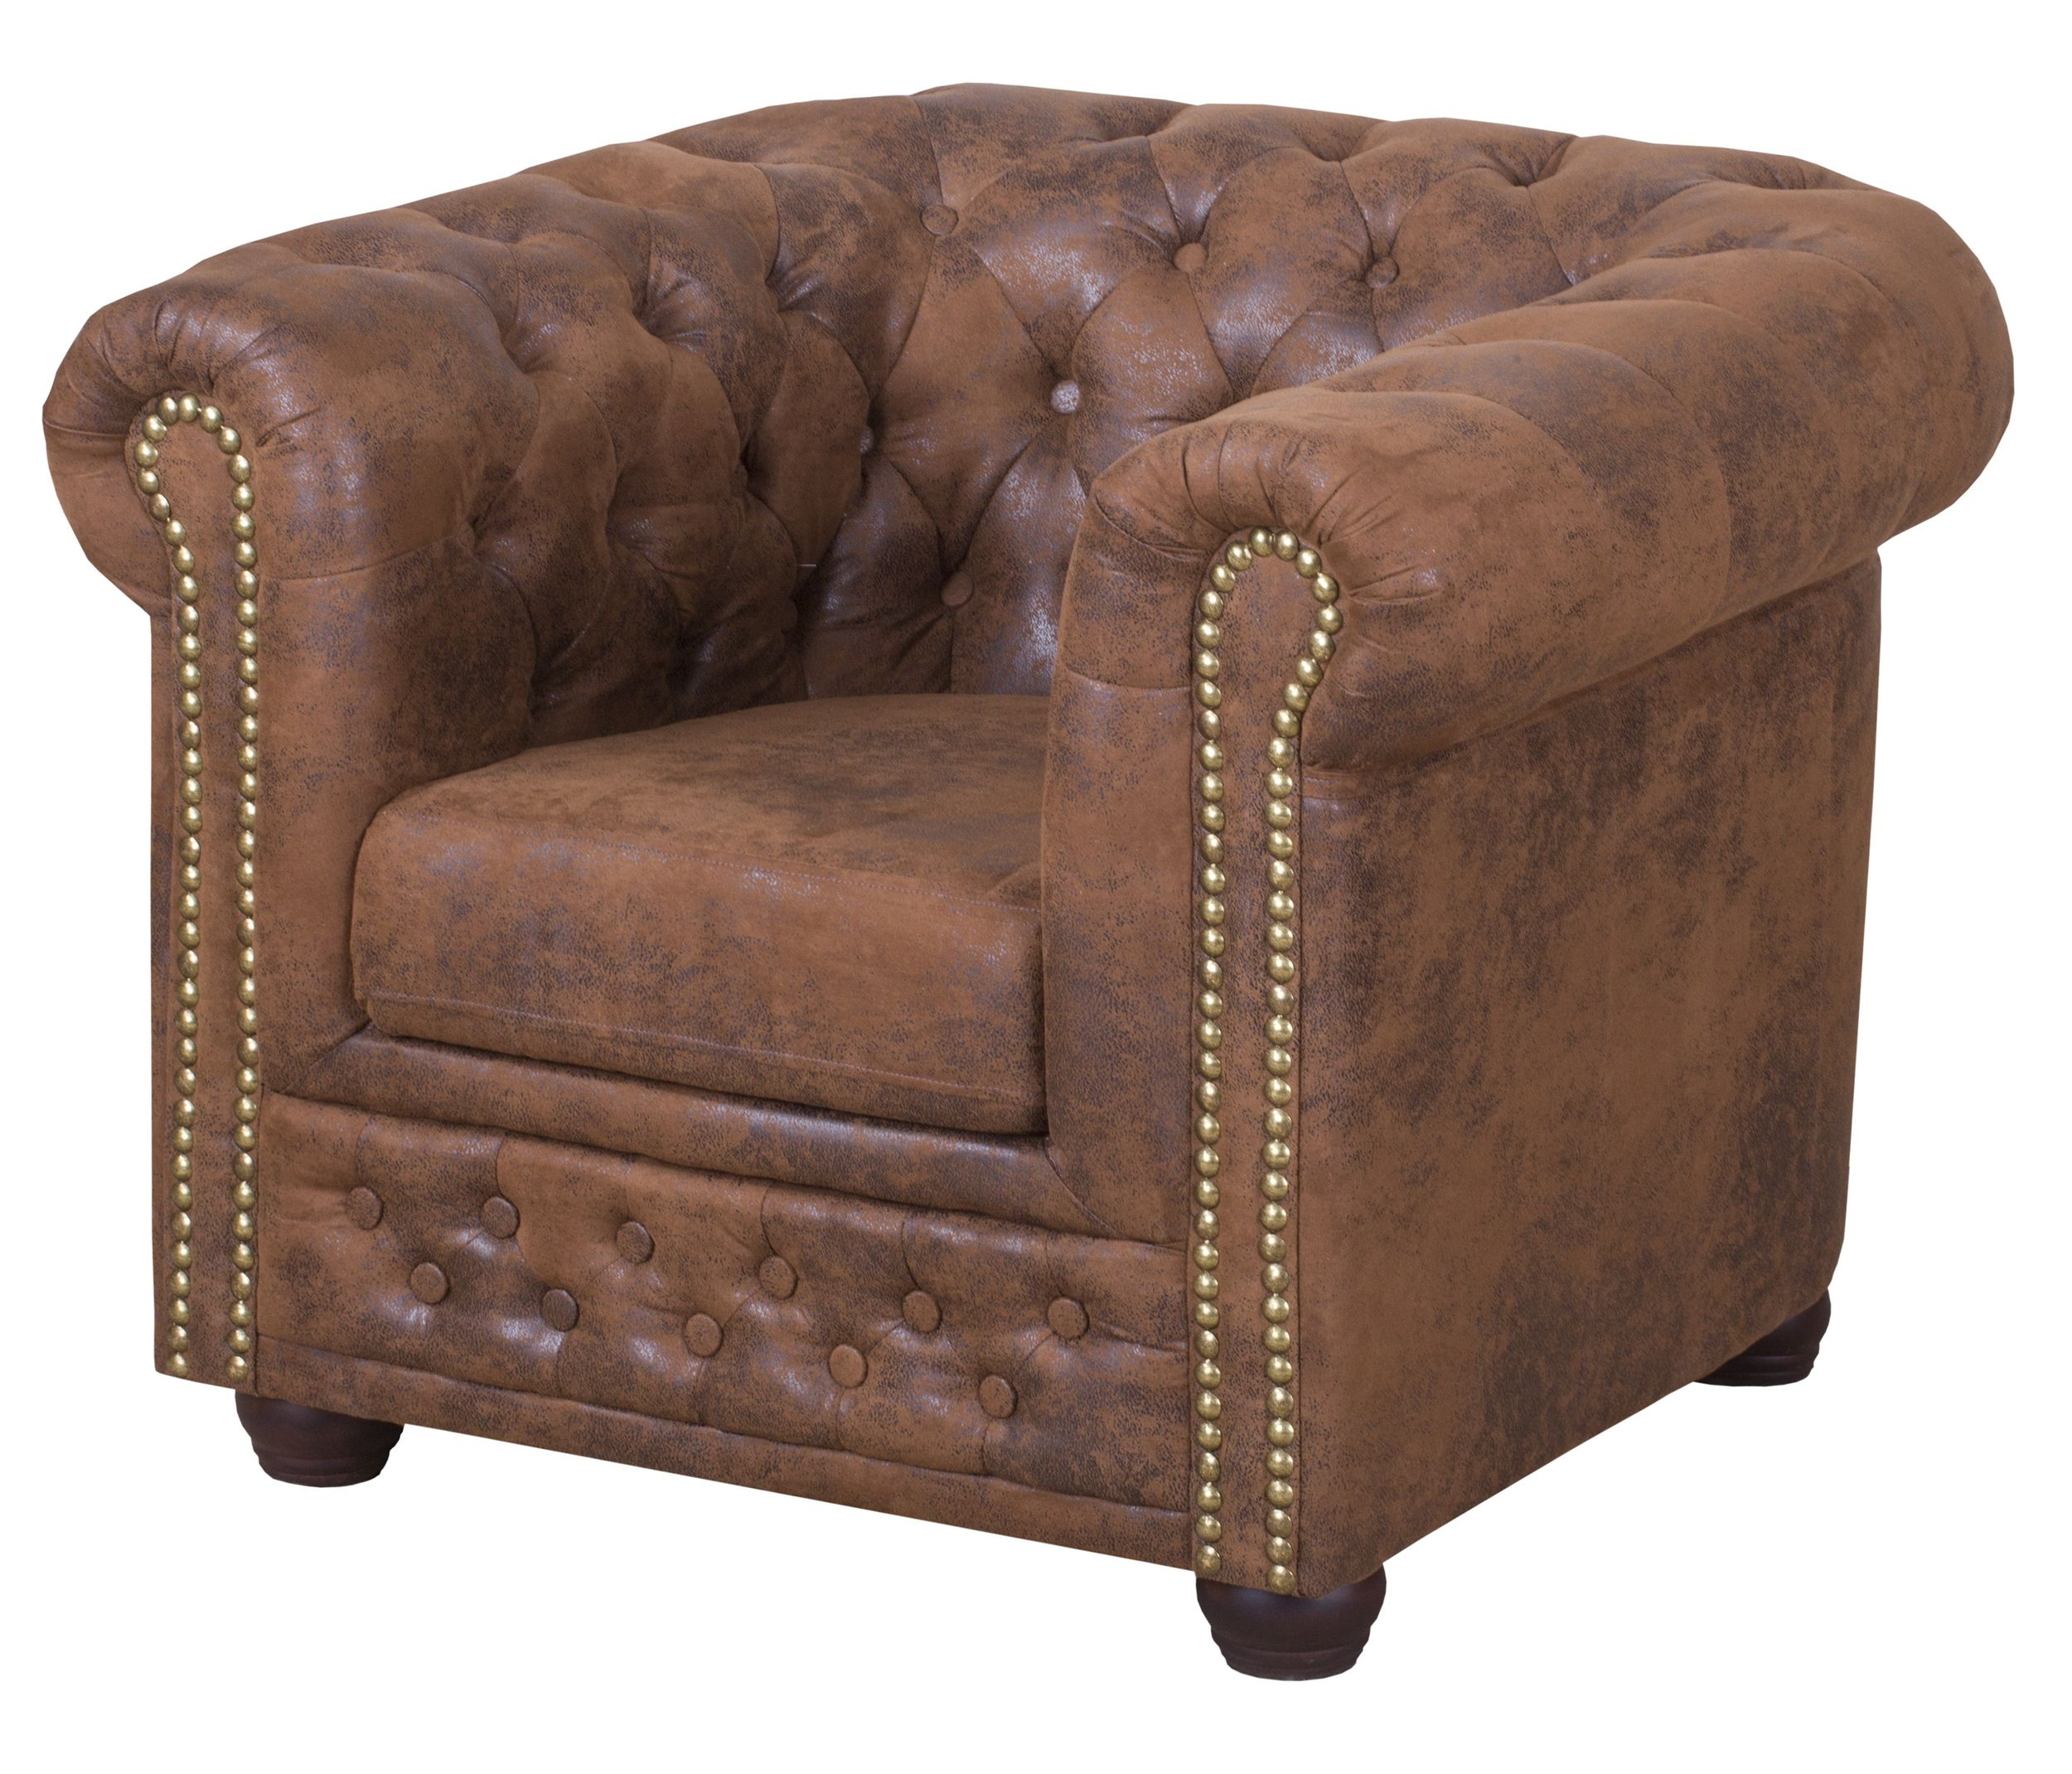 Sessel Vintage Braun Chesterfield Sessel Braun